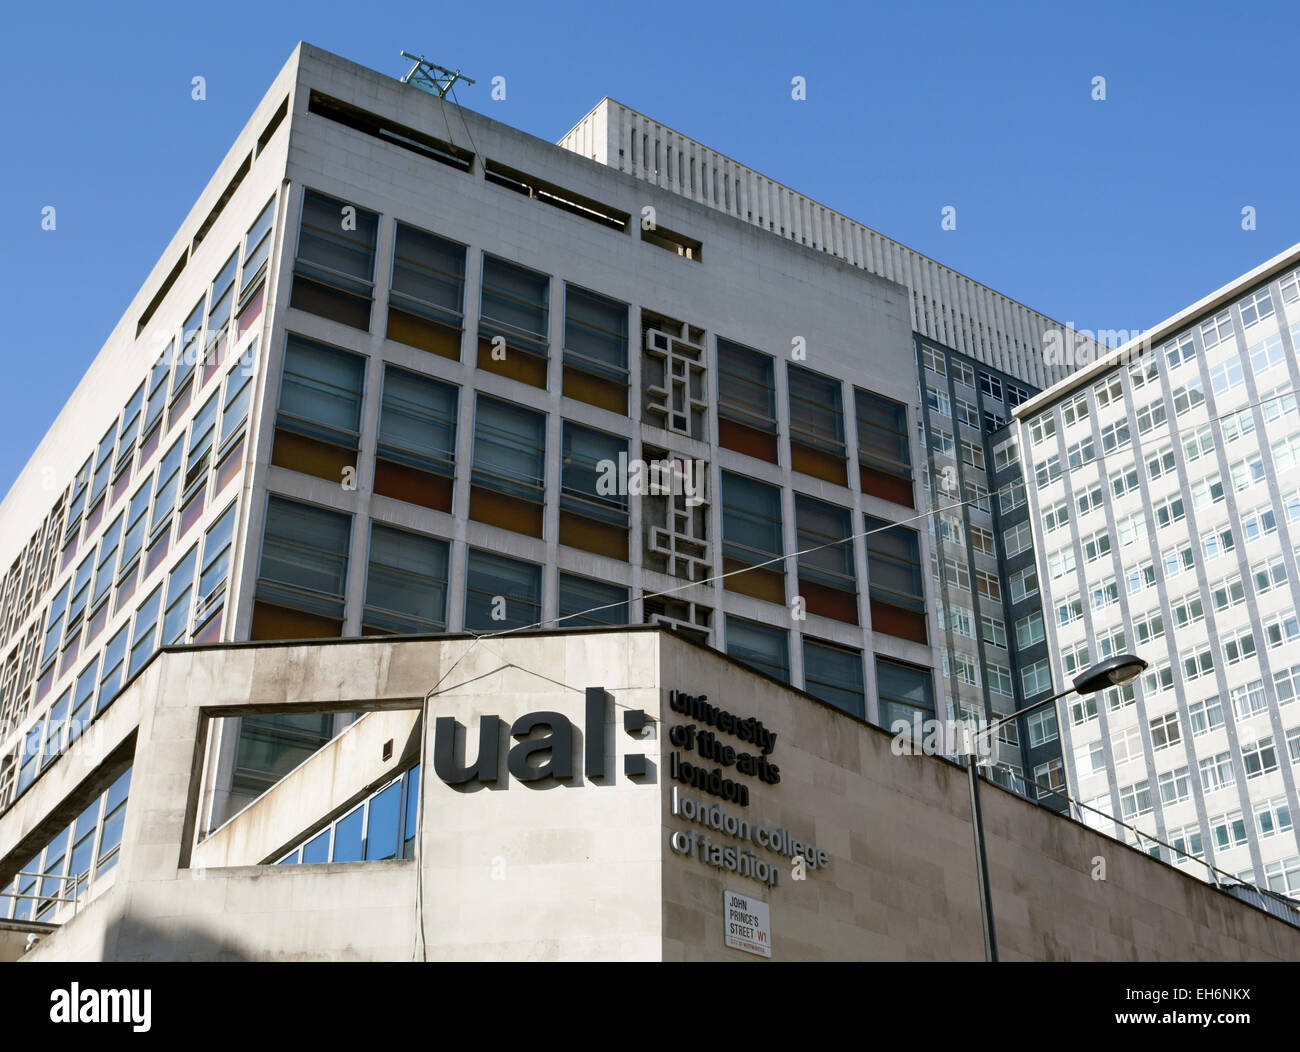 London College Of Fashion High Resolution Stock Photography And Images Alamy